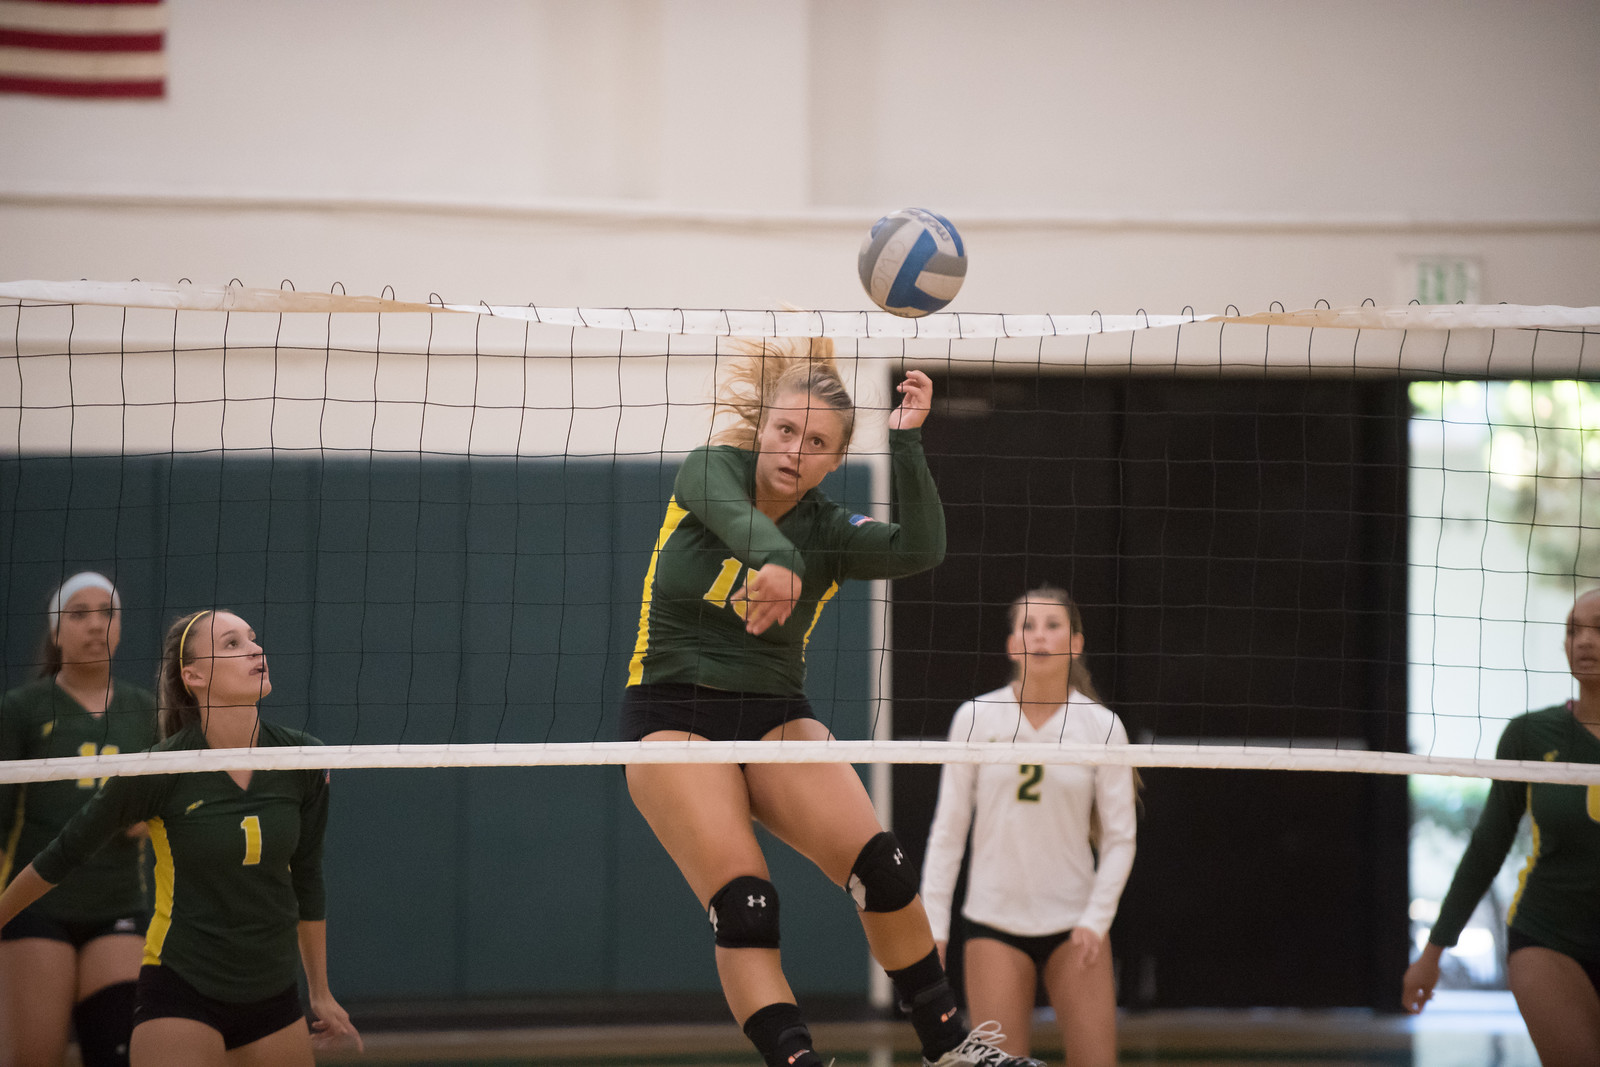 VanWaardenburg's Team High 19 kills Leads Rustlers to Victory